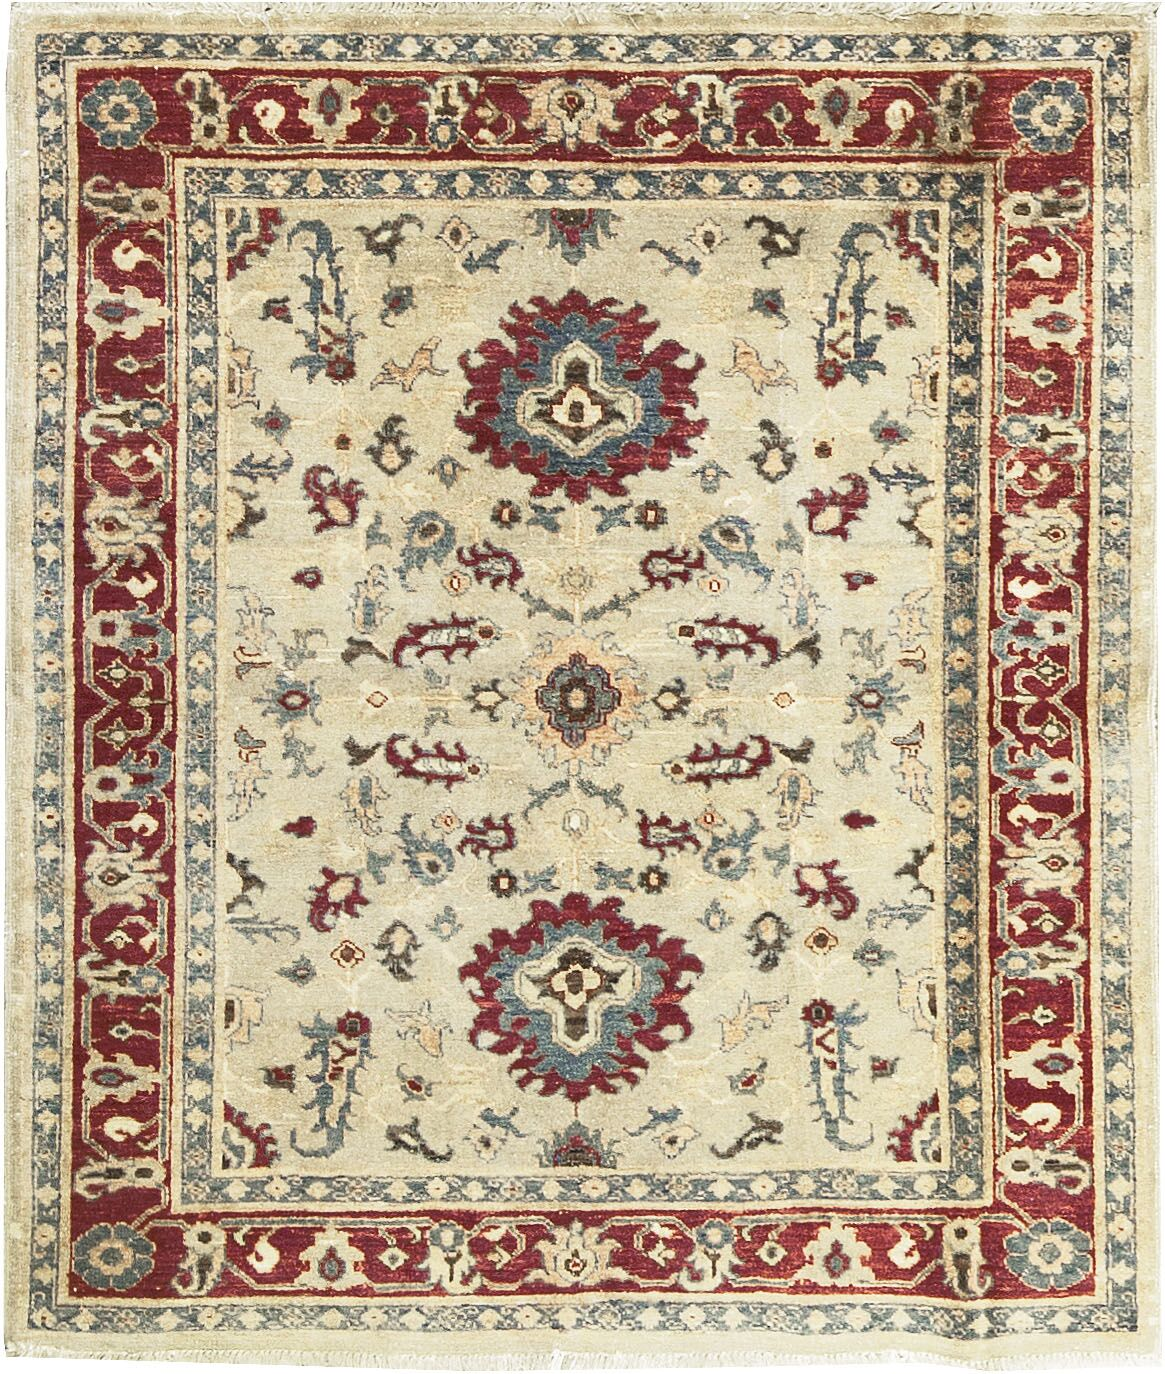 Zarbof Quality Hand-Knotted Wool Ivory/Red Area Rug